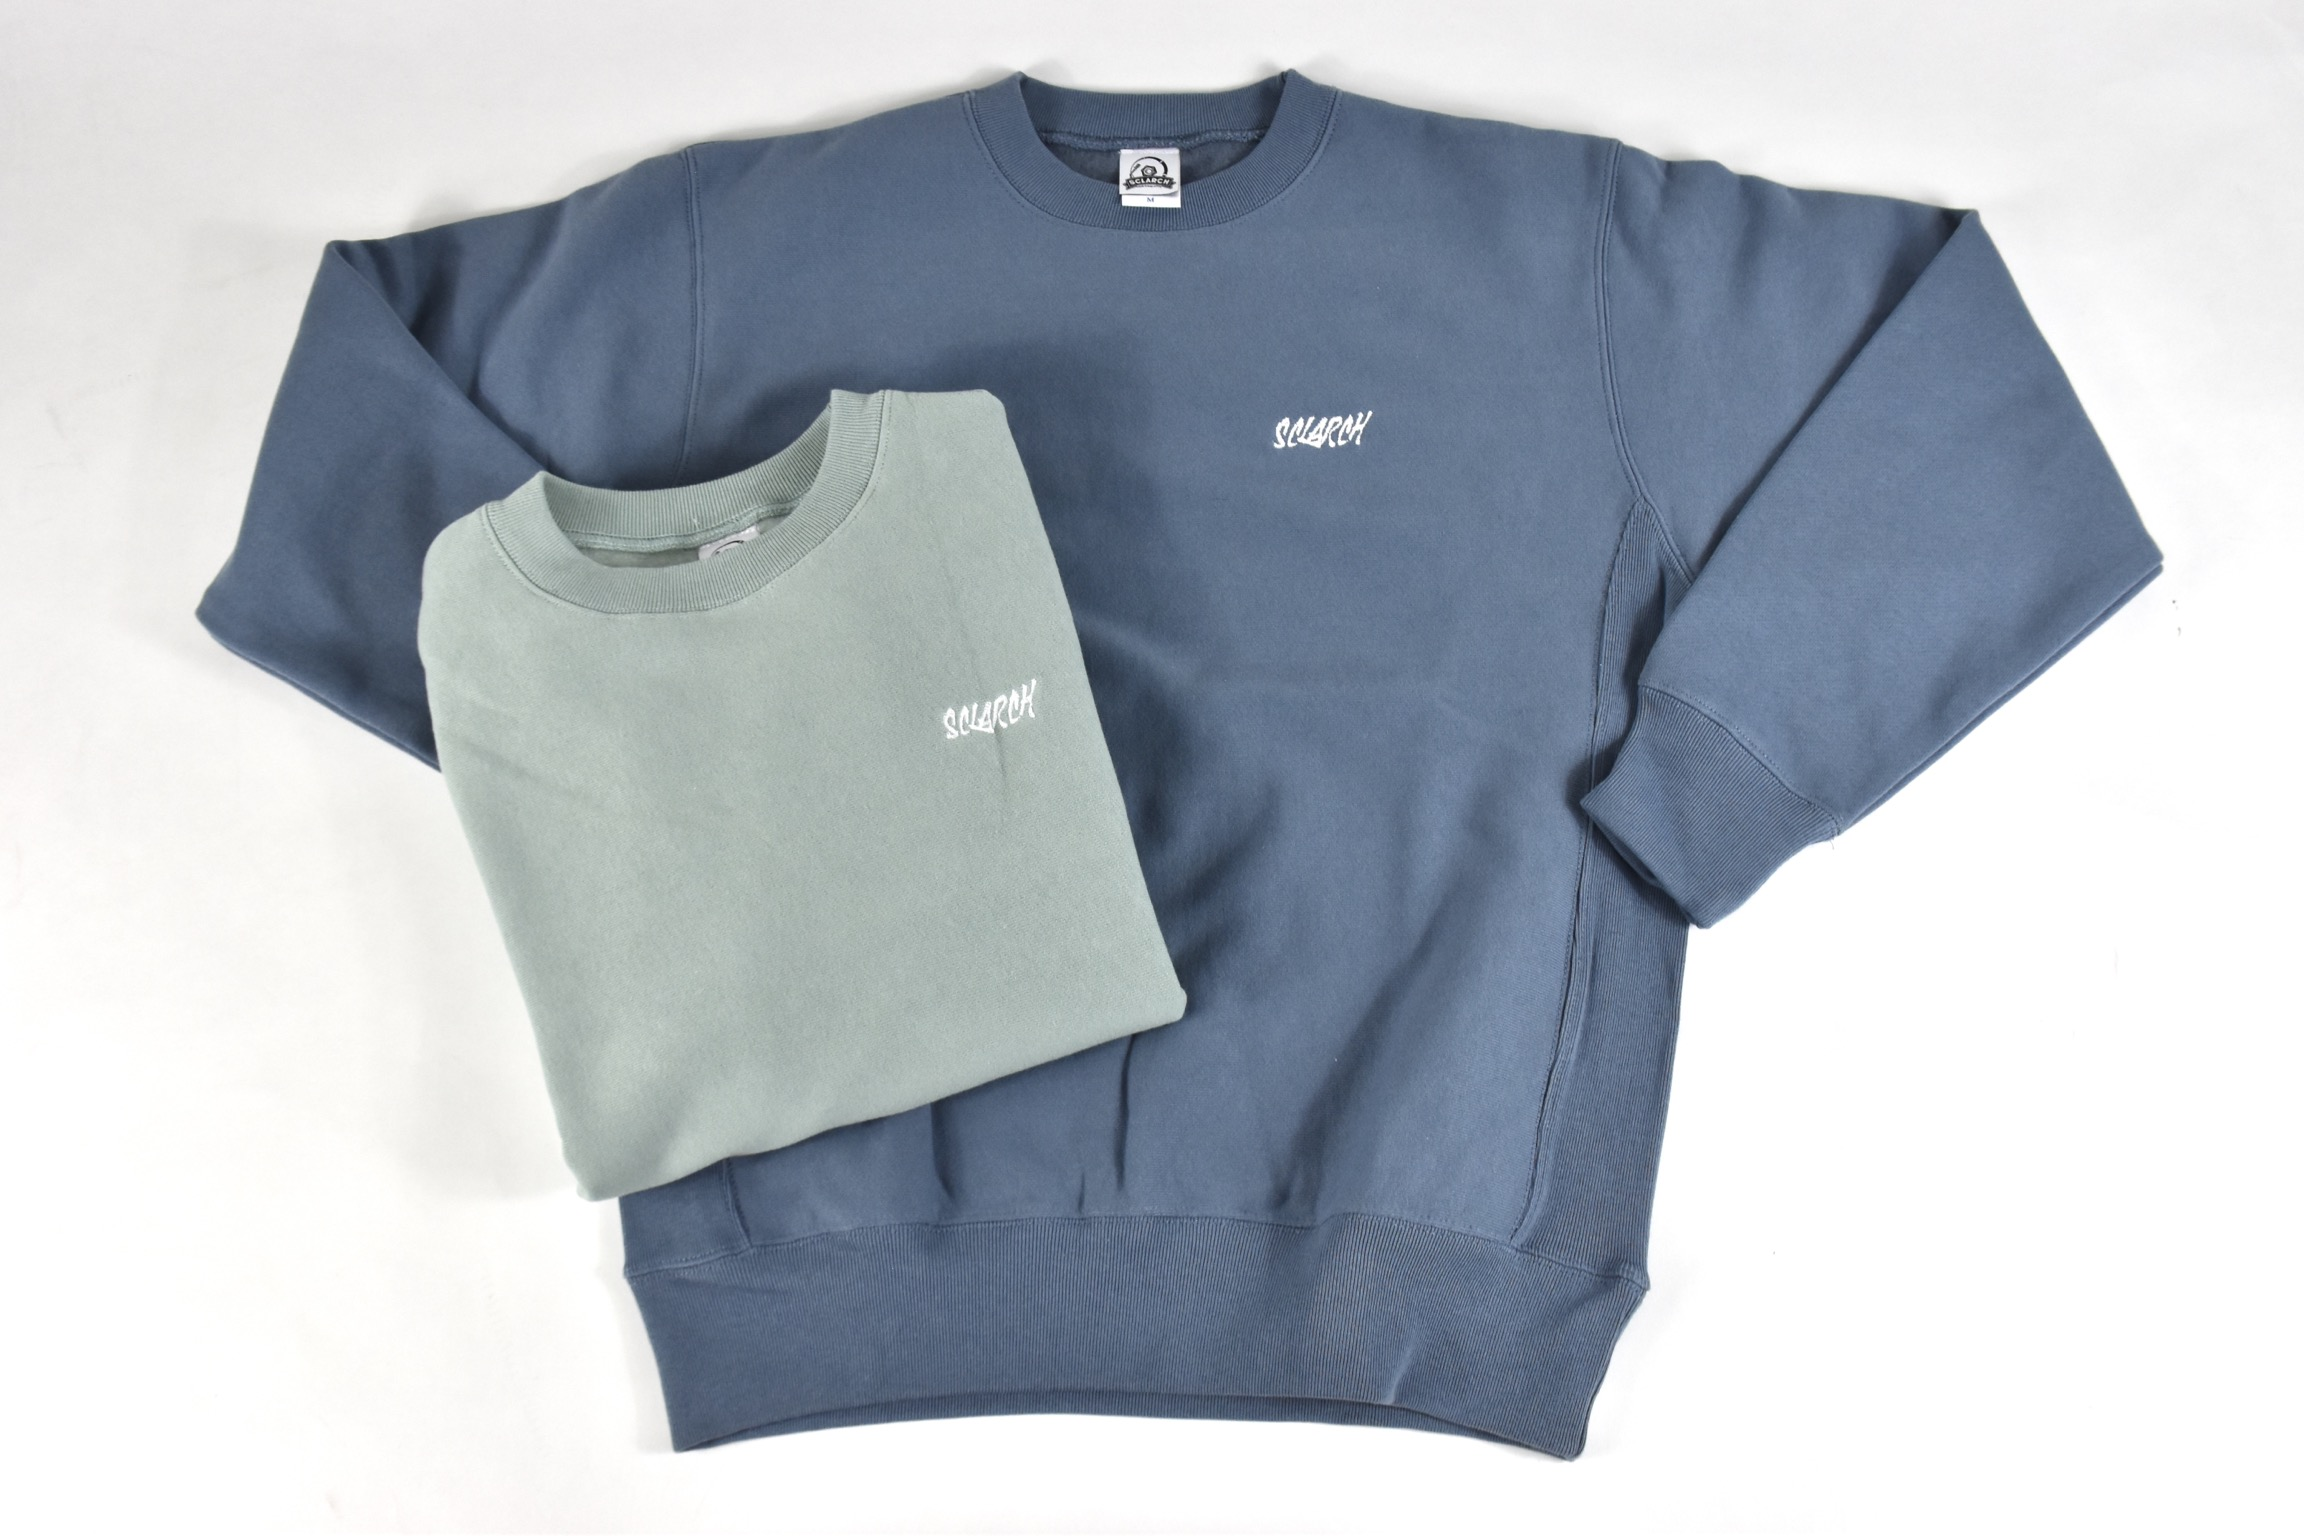 SCLARCH_EMBROIDERY_HEAVY_SWEAT